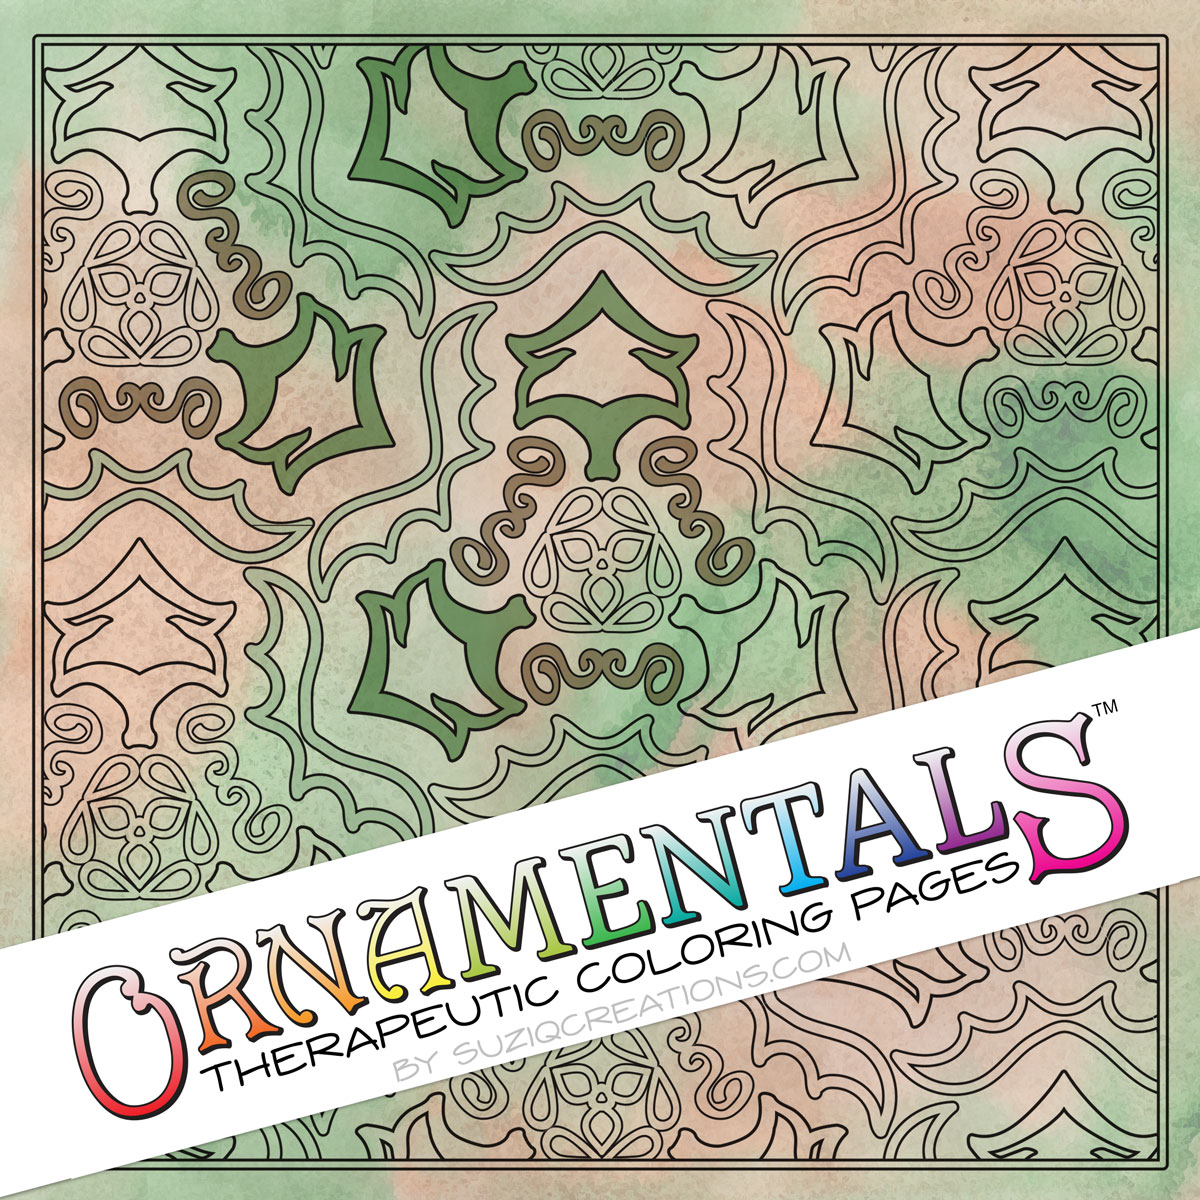 Tribal Triptych OrnaMENTALs Coloring Page Design #0048 Digital Download Coloring Preview